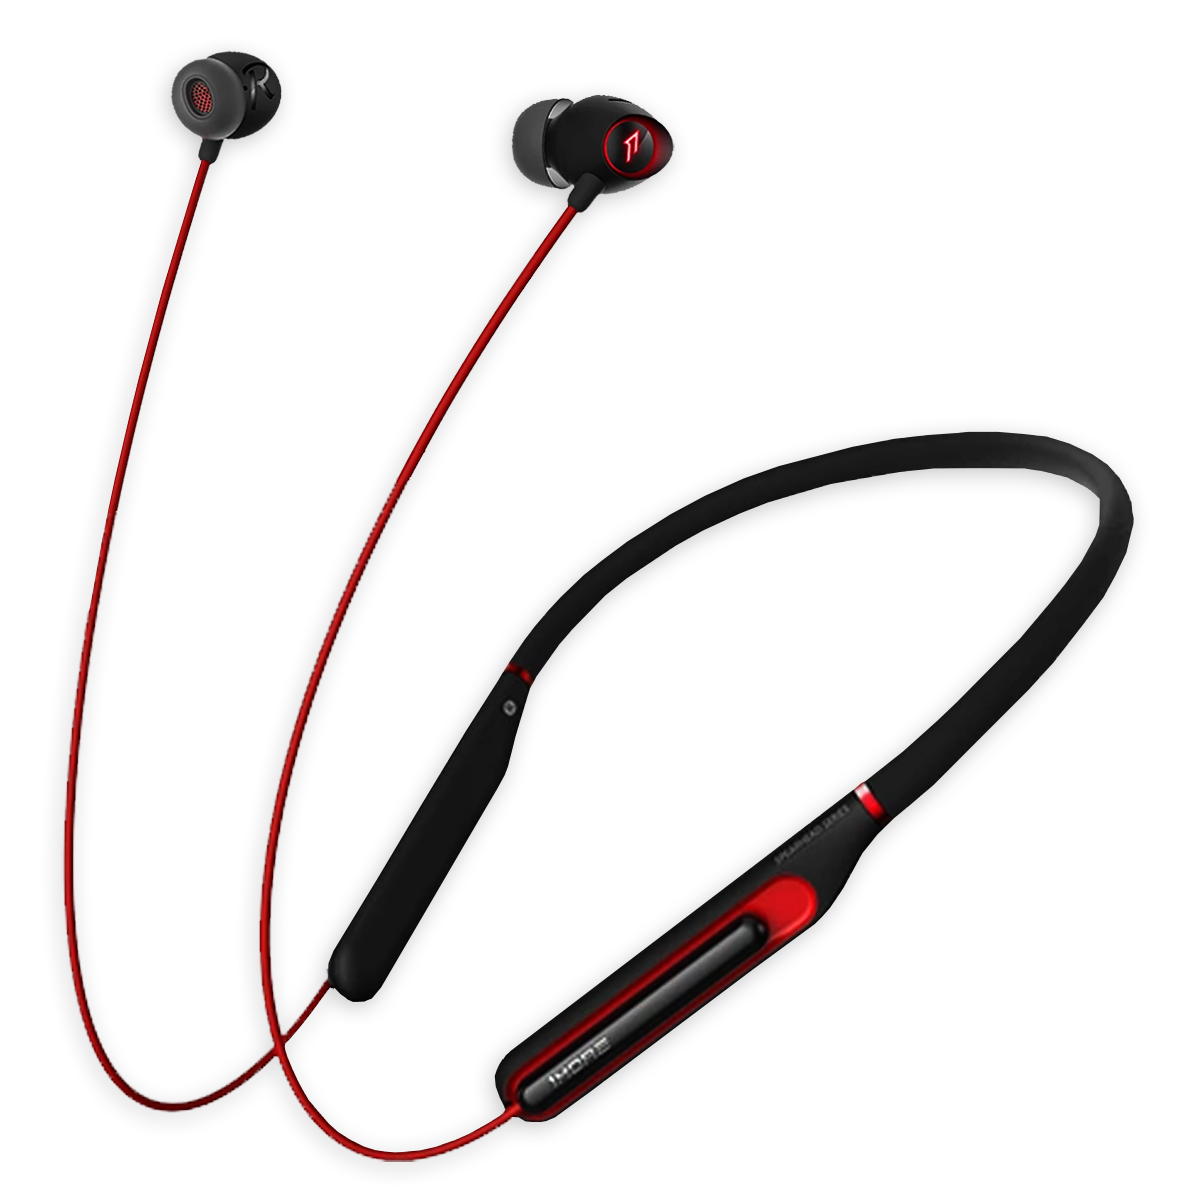 1MORE SPEARHEAD VR (E1020BT) In-Ear Wireless Headphones for Gaming